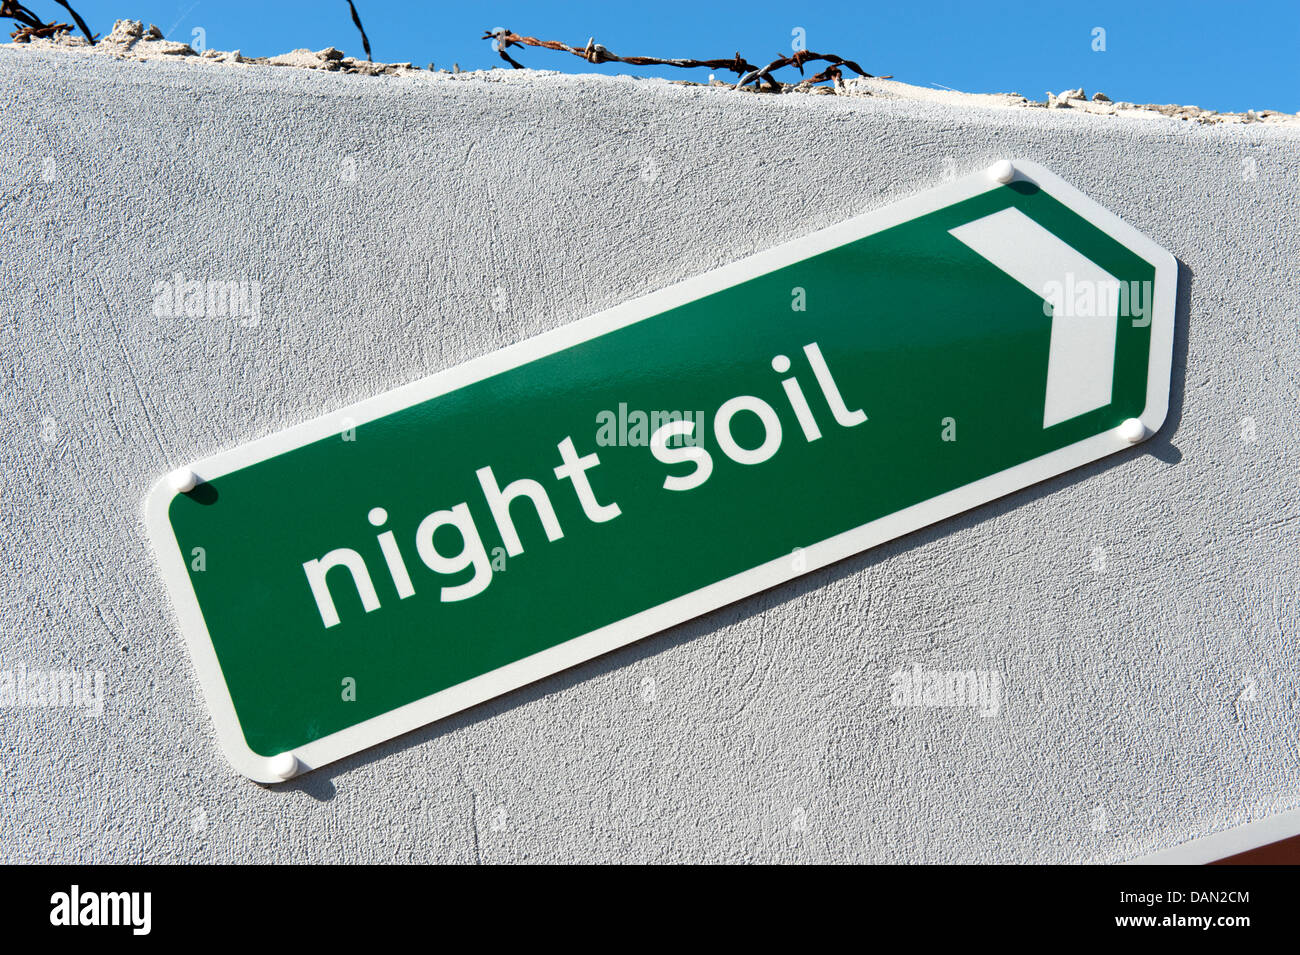 Sign Night Soil Green Arrow to right - Stock Image